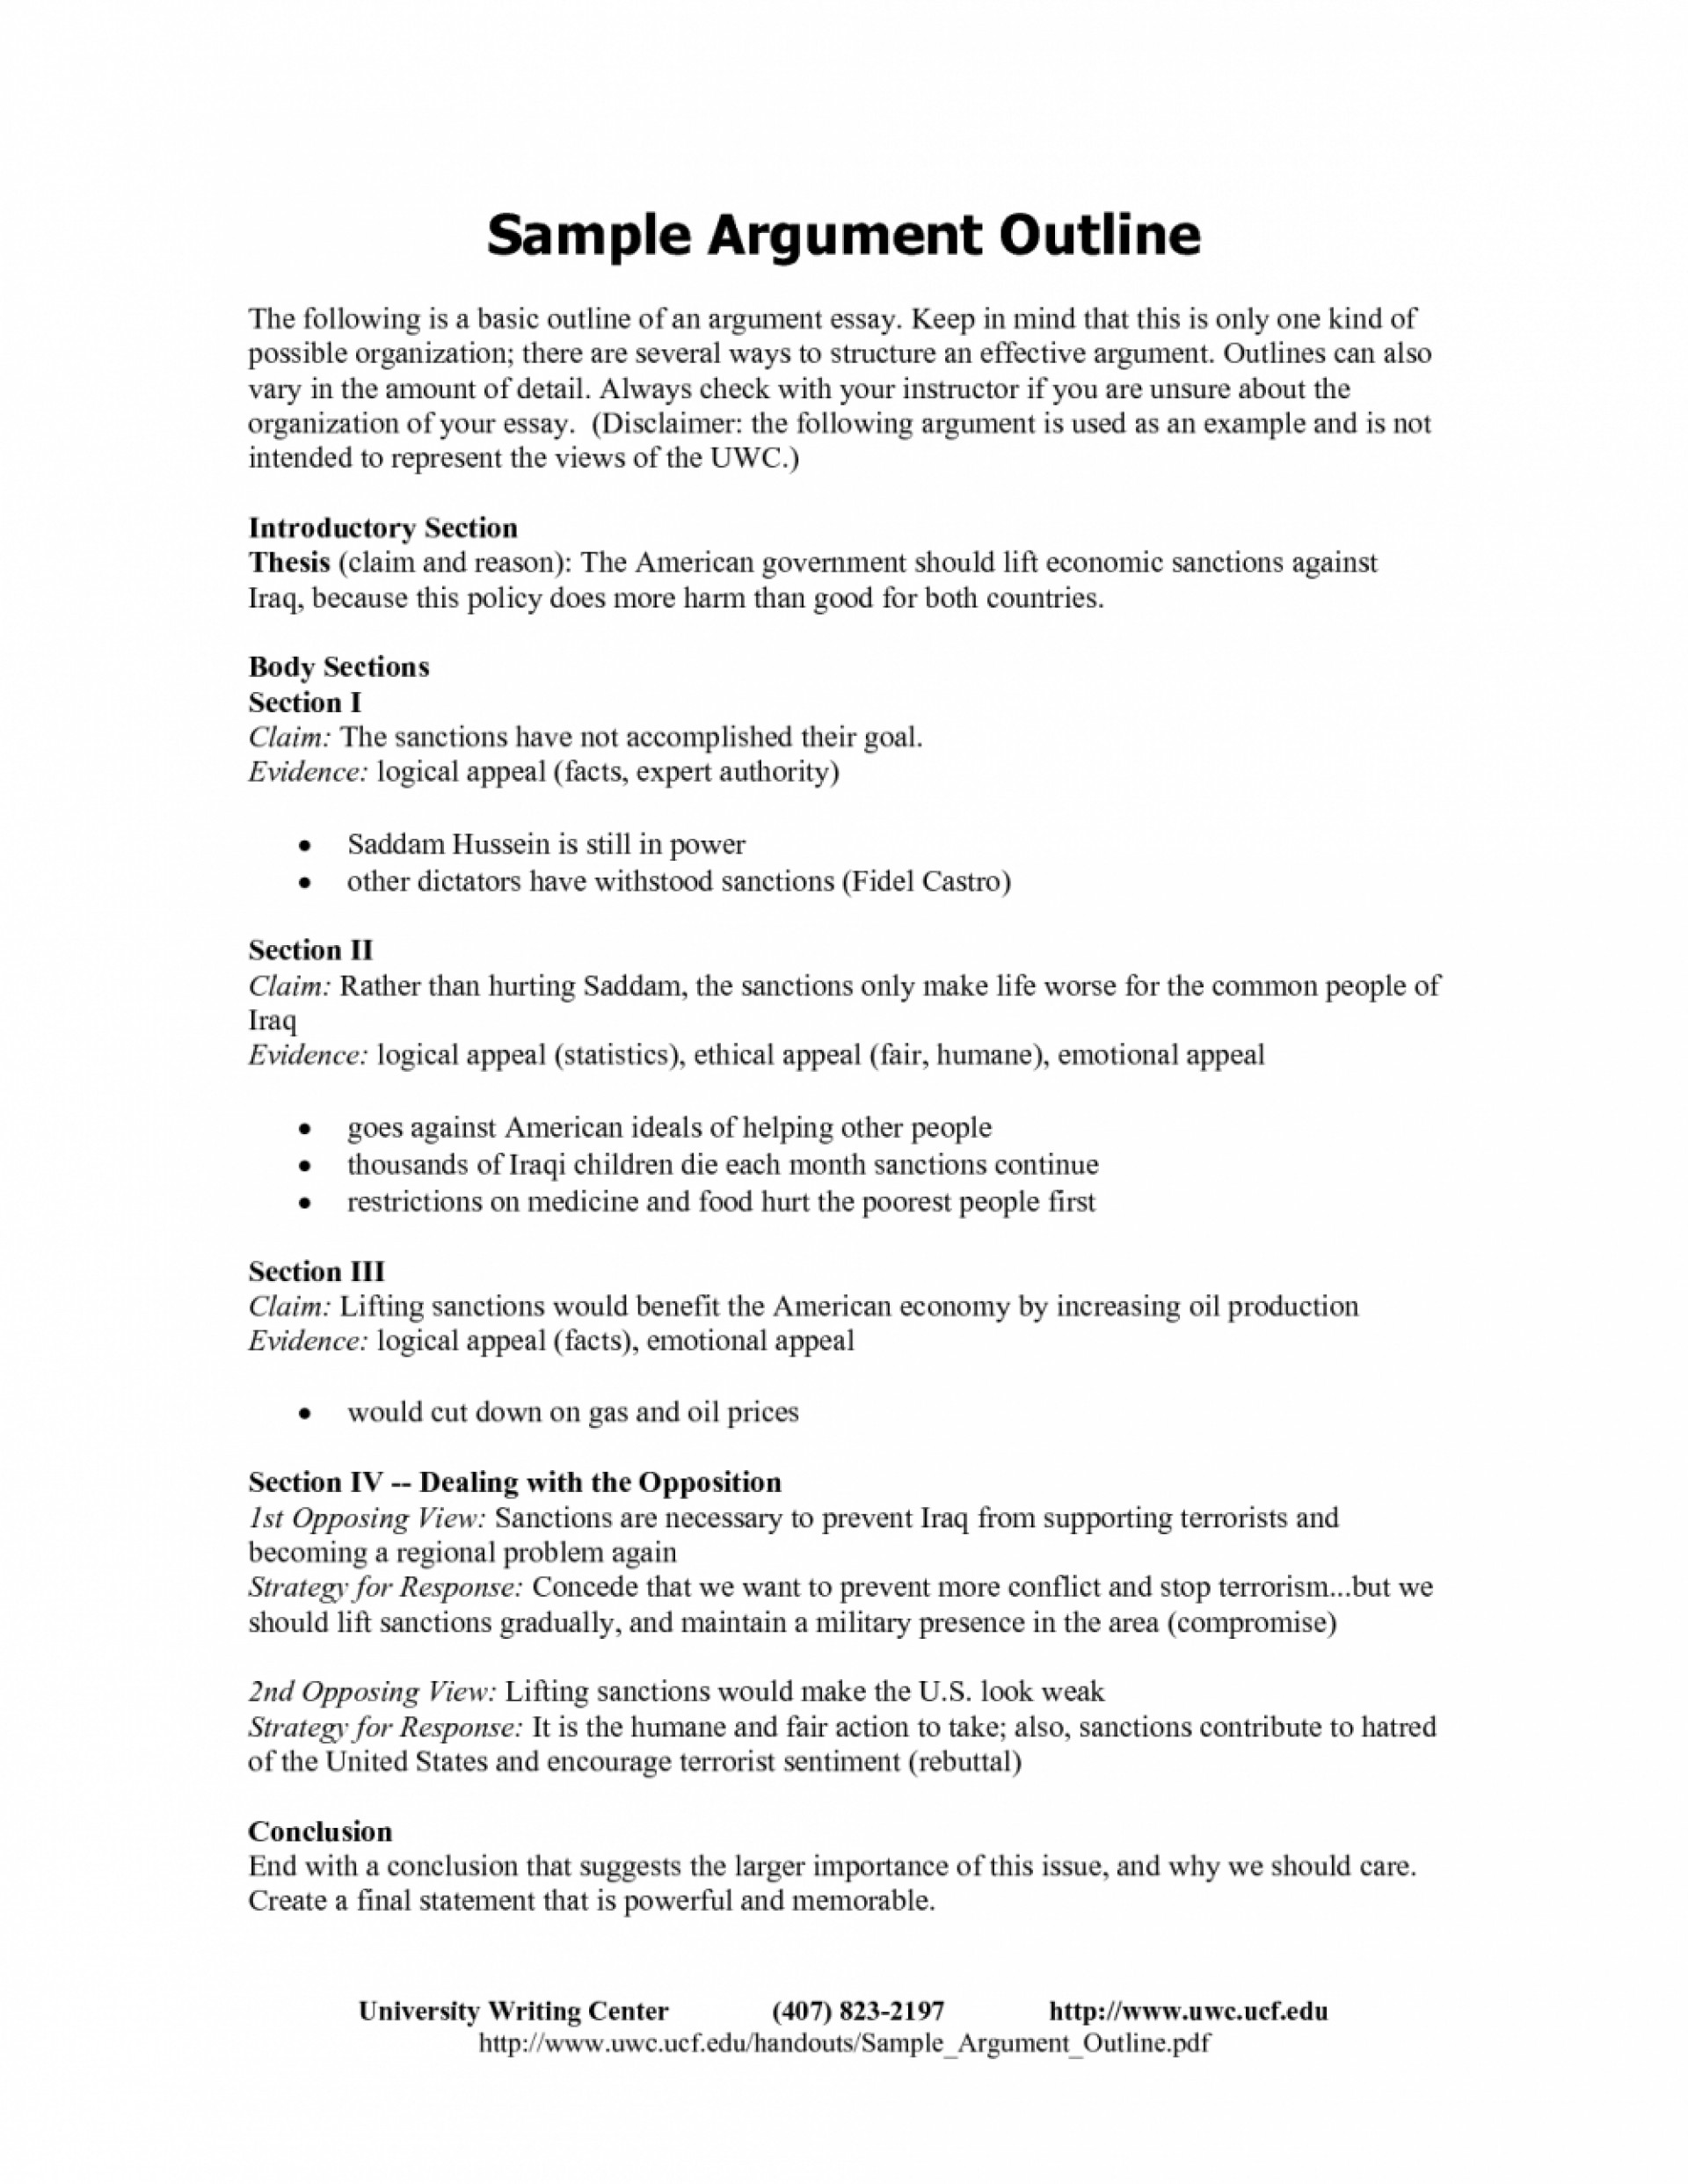 020 Argumentative Essay Outline Template Format For Writing Cv In Ia Example Top Worksheet Pdf 1920